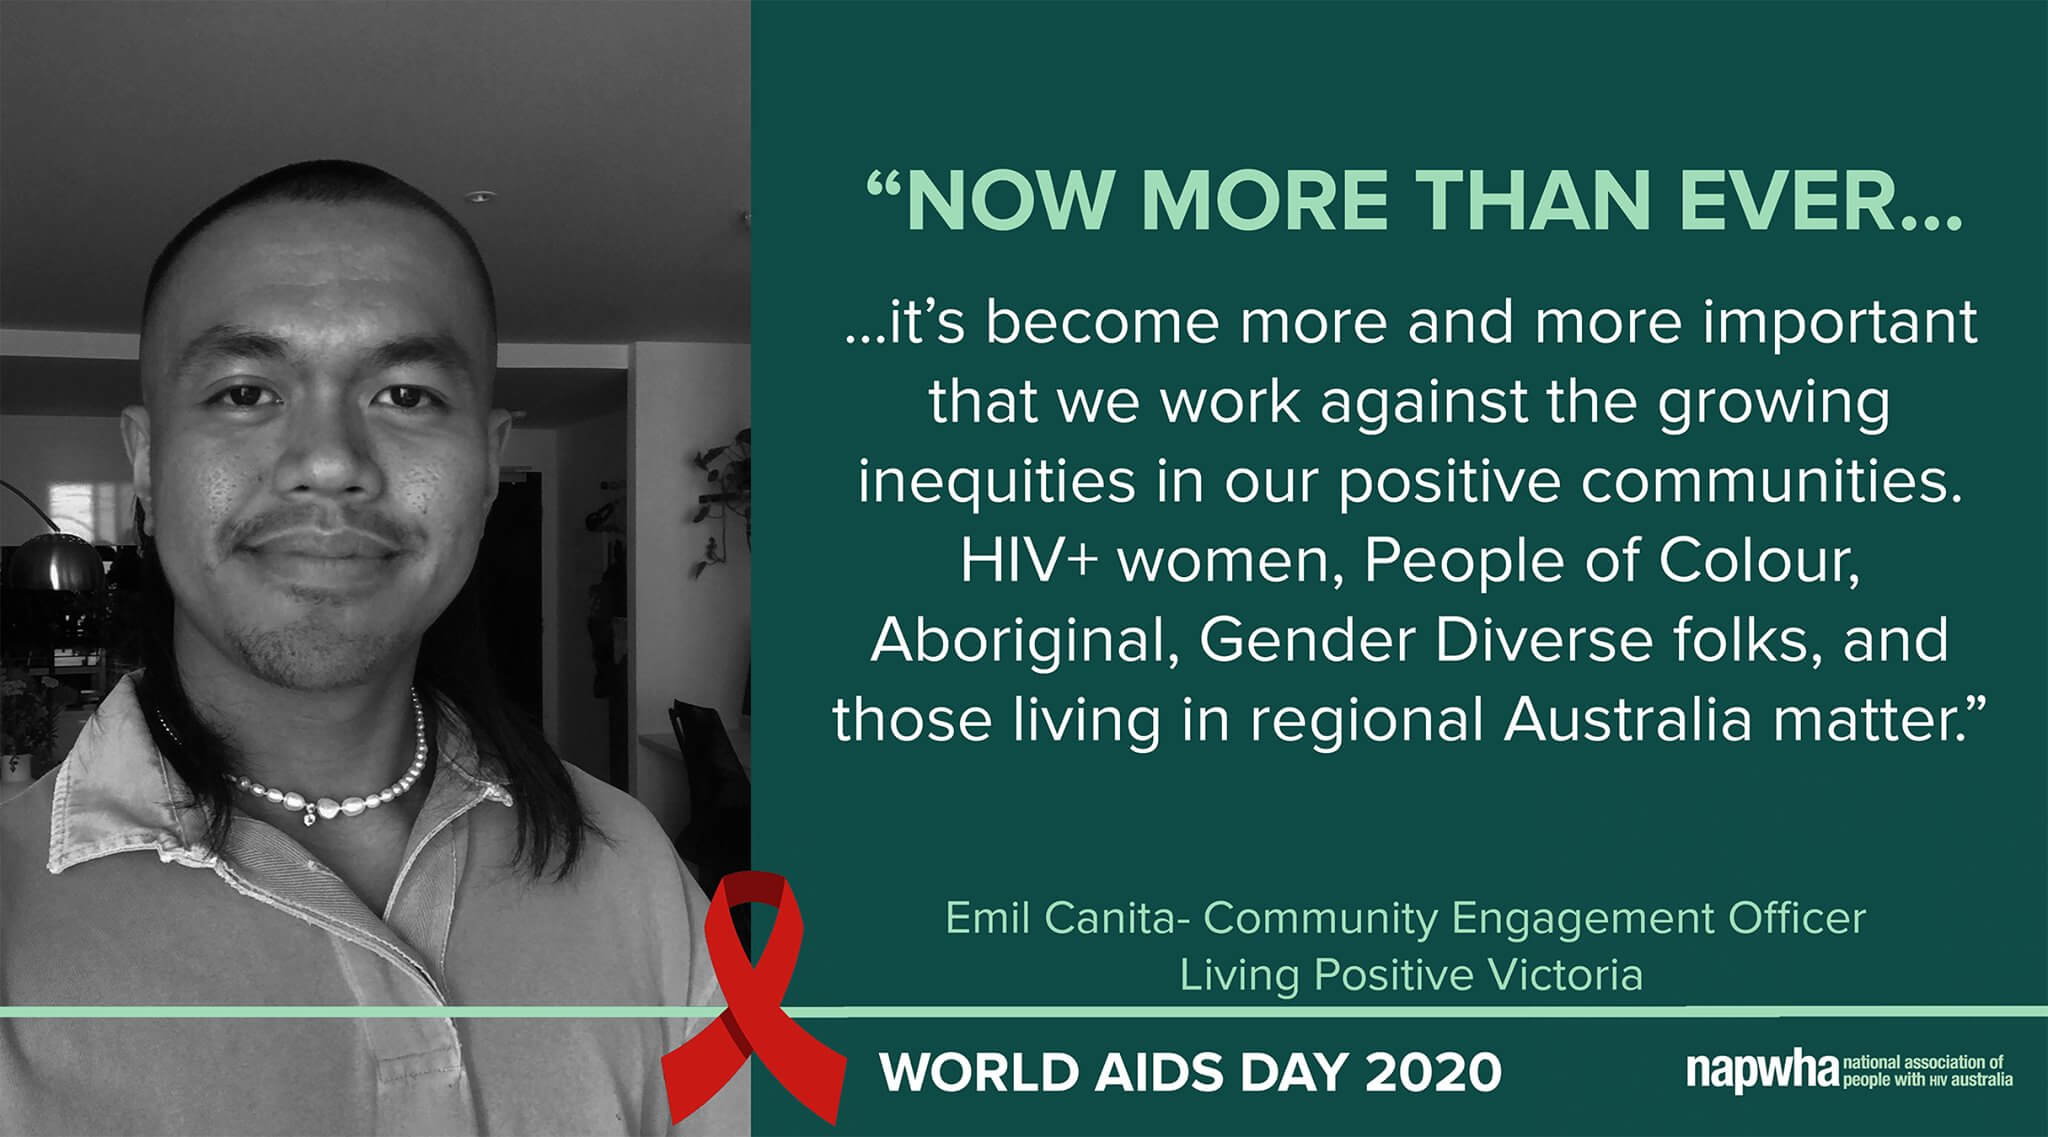 Emil Canita, Community Engagement Officer of Living Positive Victoria provides a World AIDS Day 2020 message